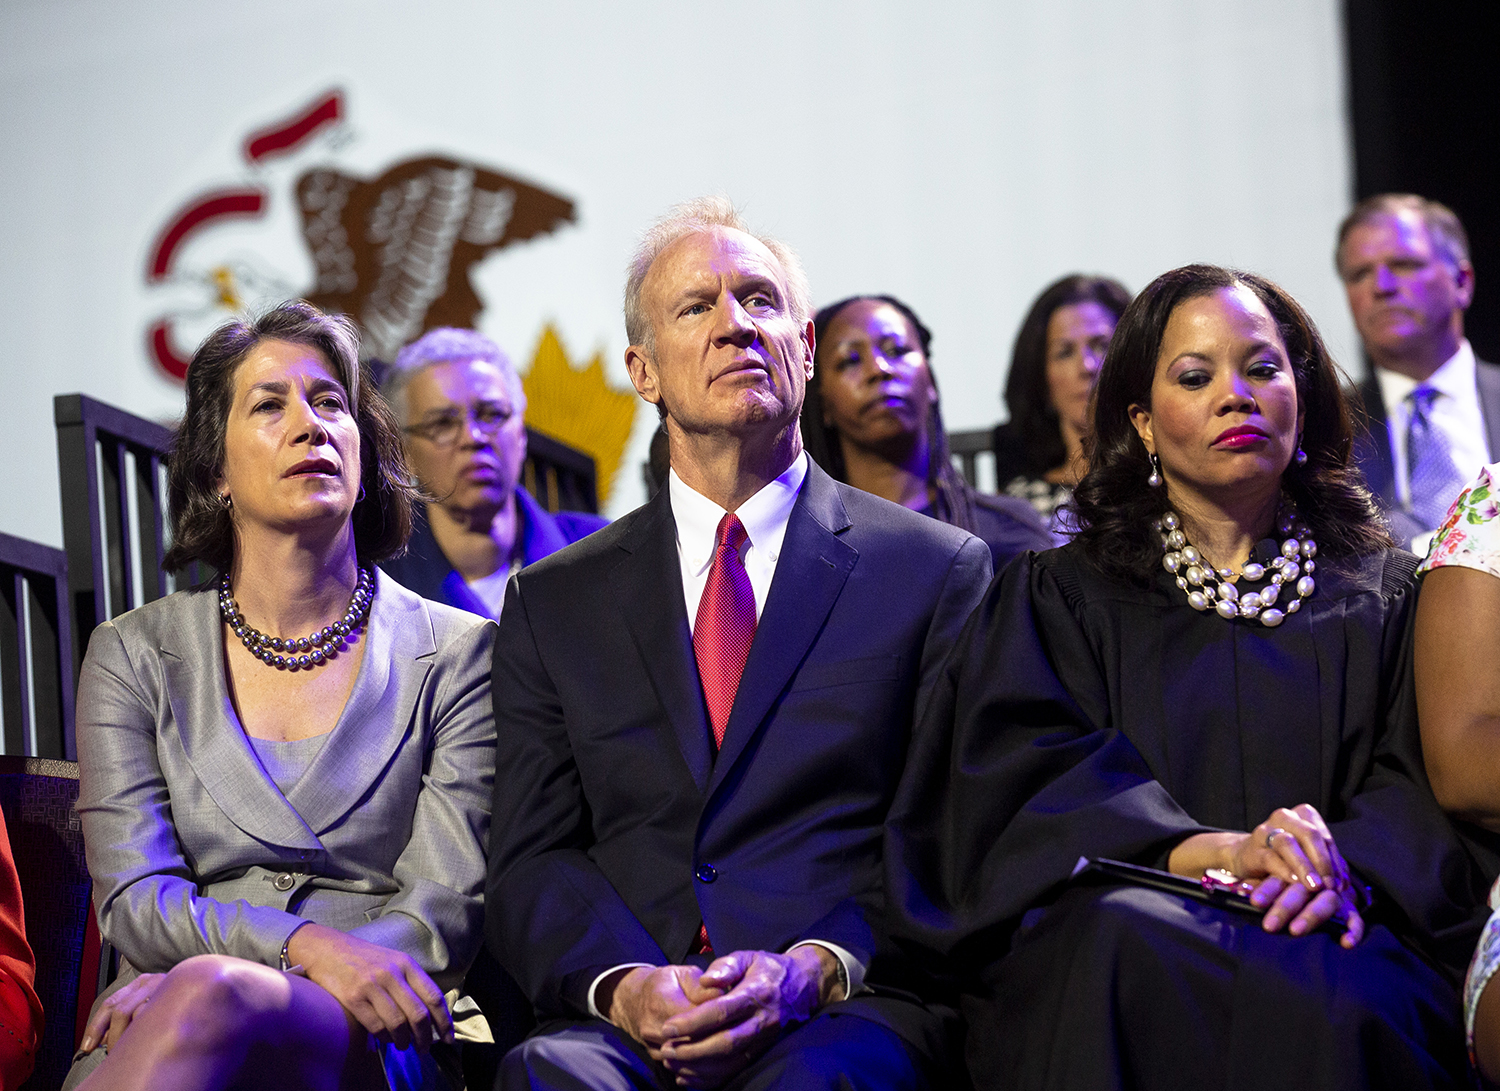 Gov. Bruce Rauner and his wife Diana, left, listen to inaugural speeches during the Illinois Inaugural Ceremony Monday, Jan. 14, 2019 a the Bank of Springfield Center in Springfield, Ill. [Rich Saal/The State Journal-Register]